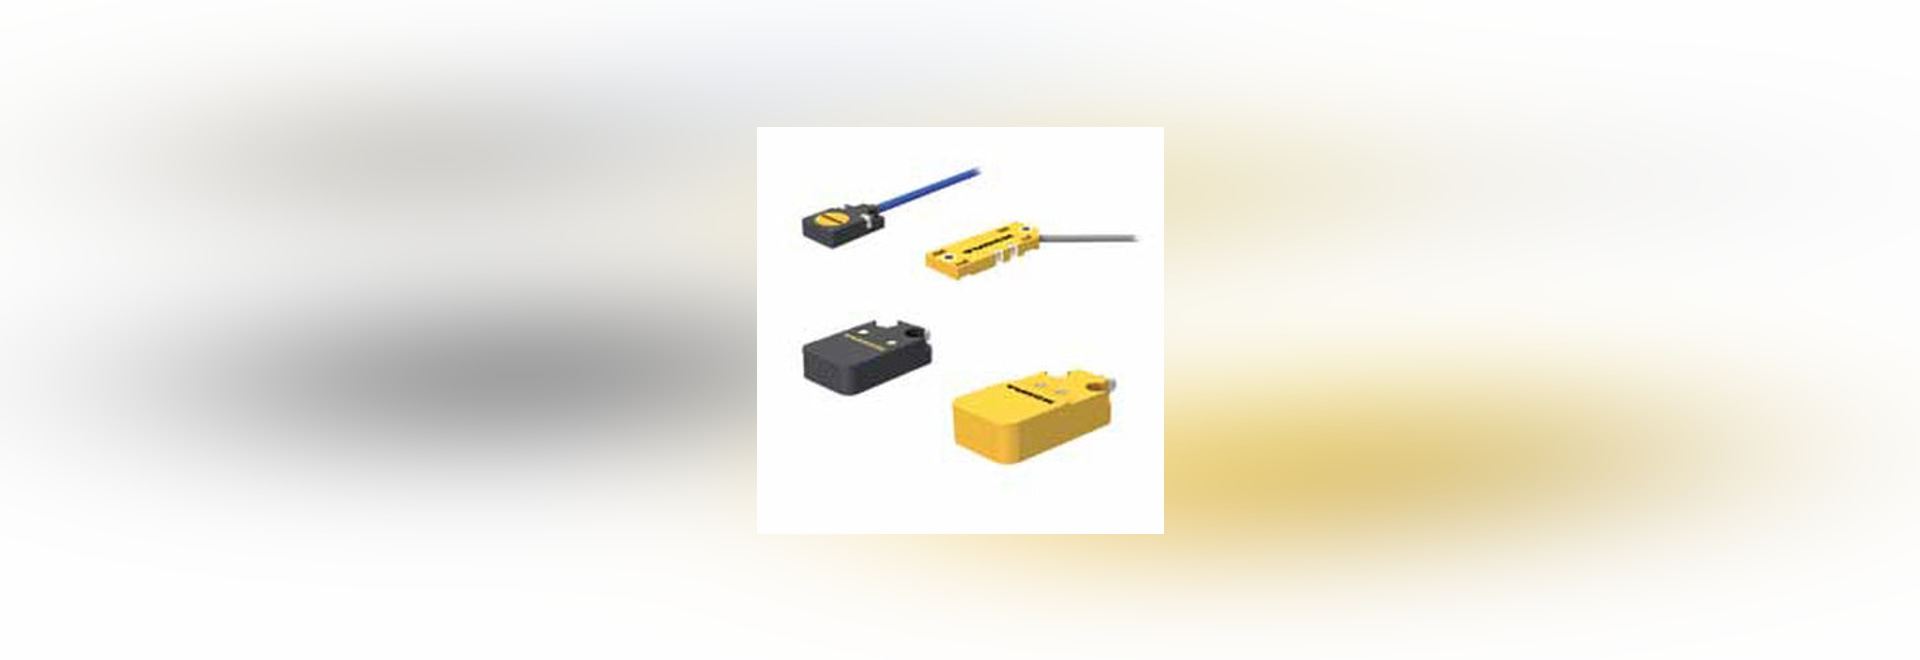 New Capacitive Proximity Sensor By Turck Capacitance Switch Circuit